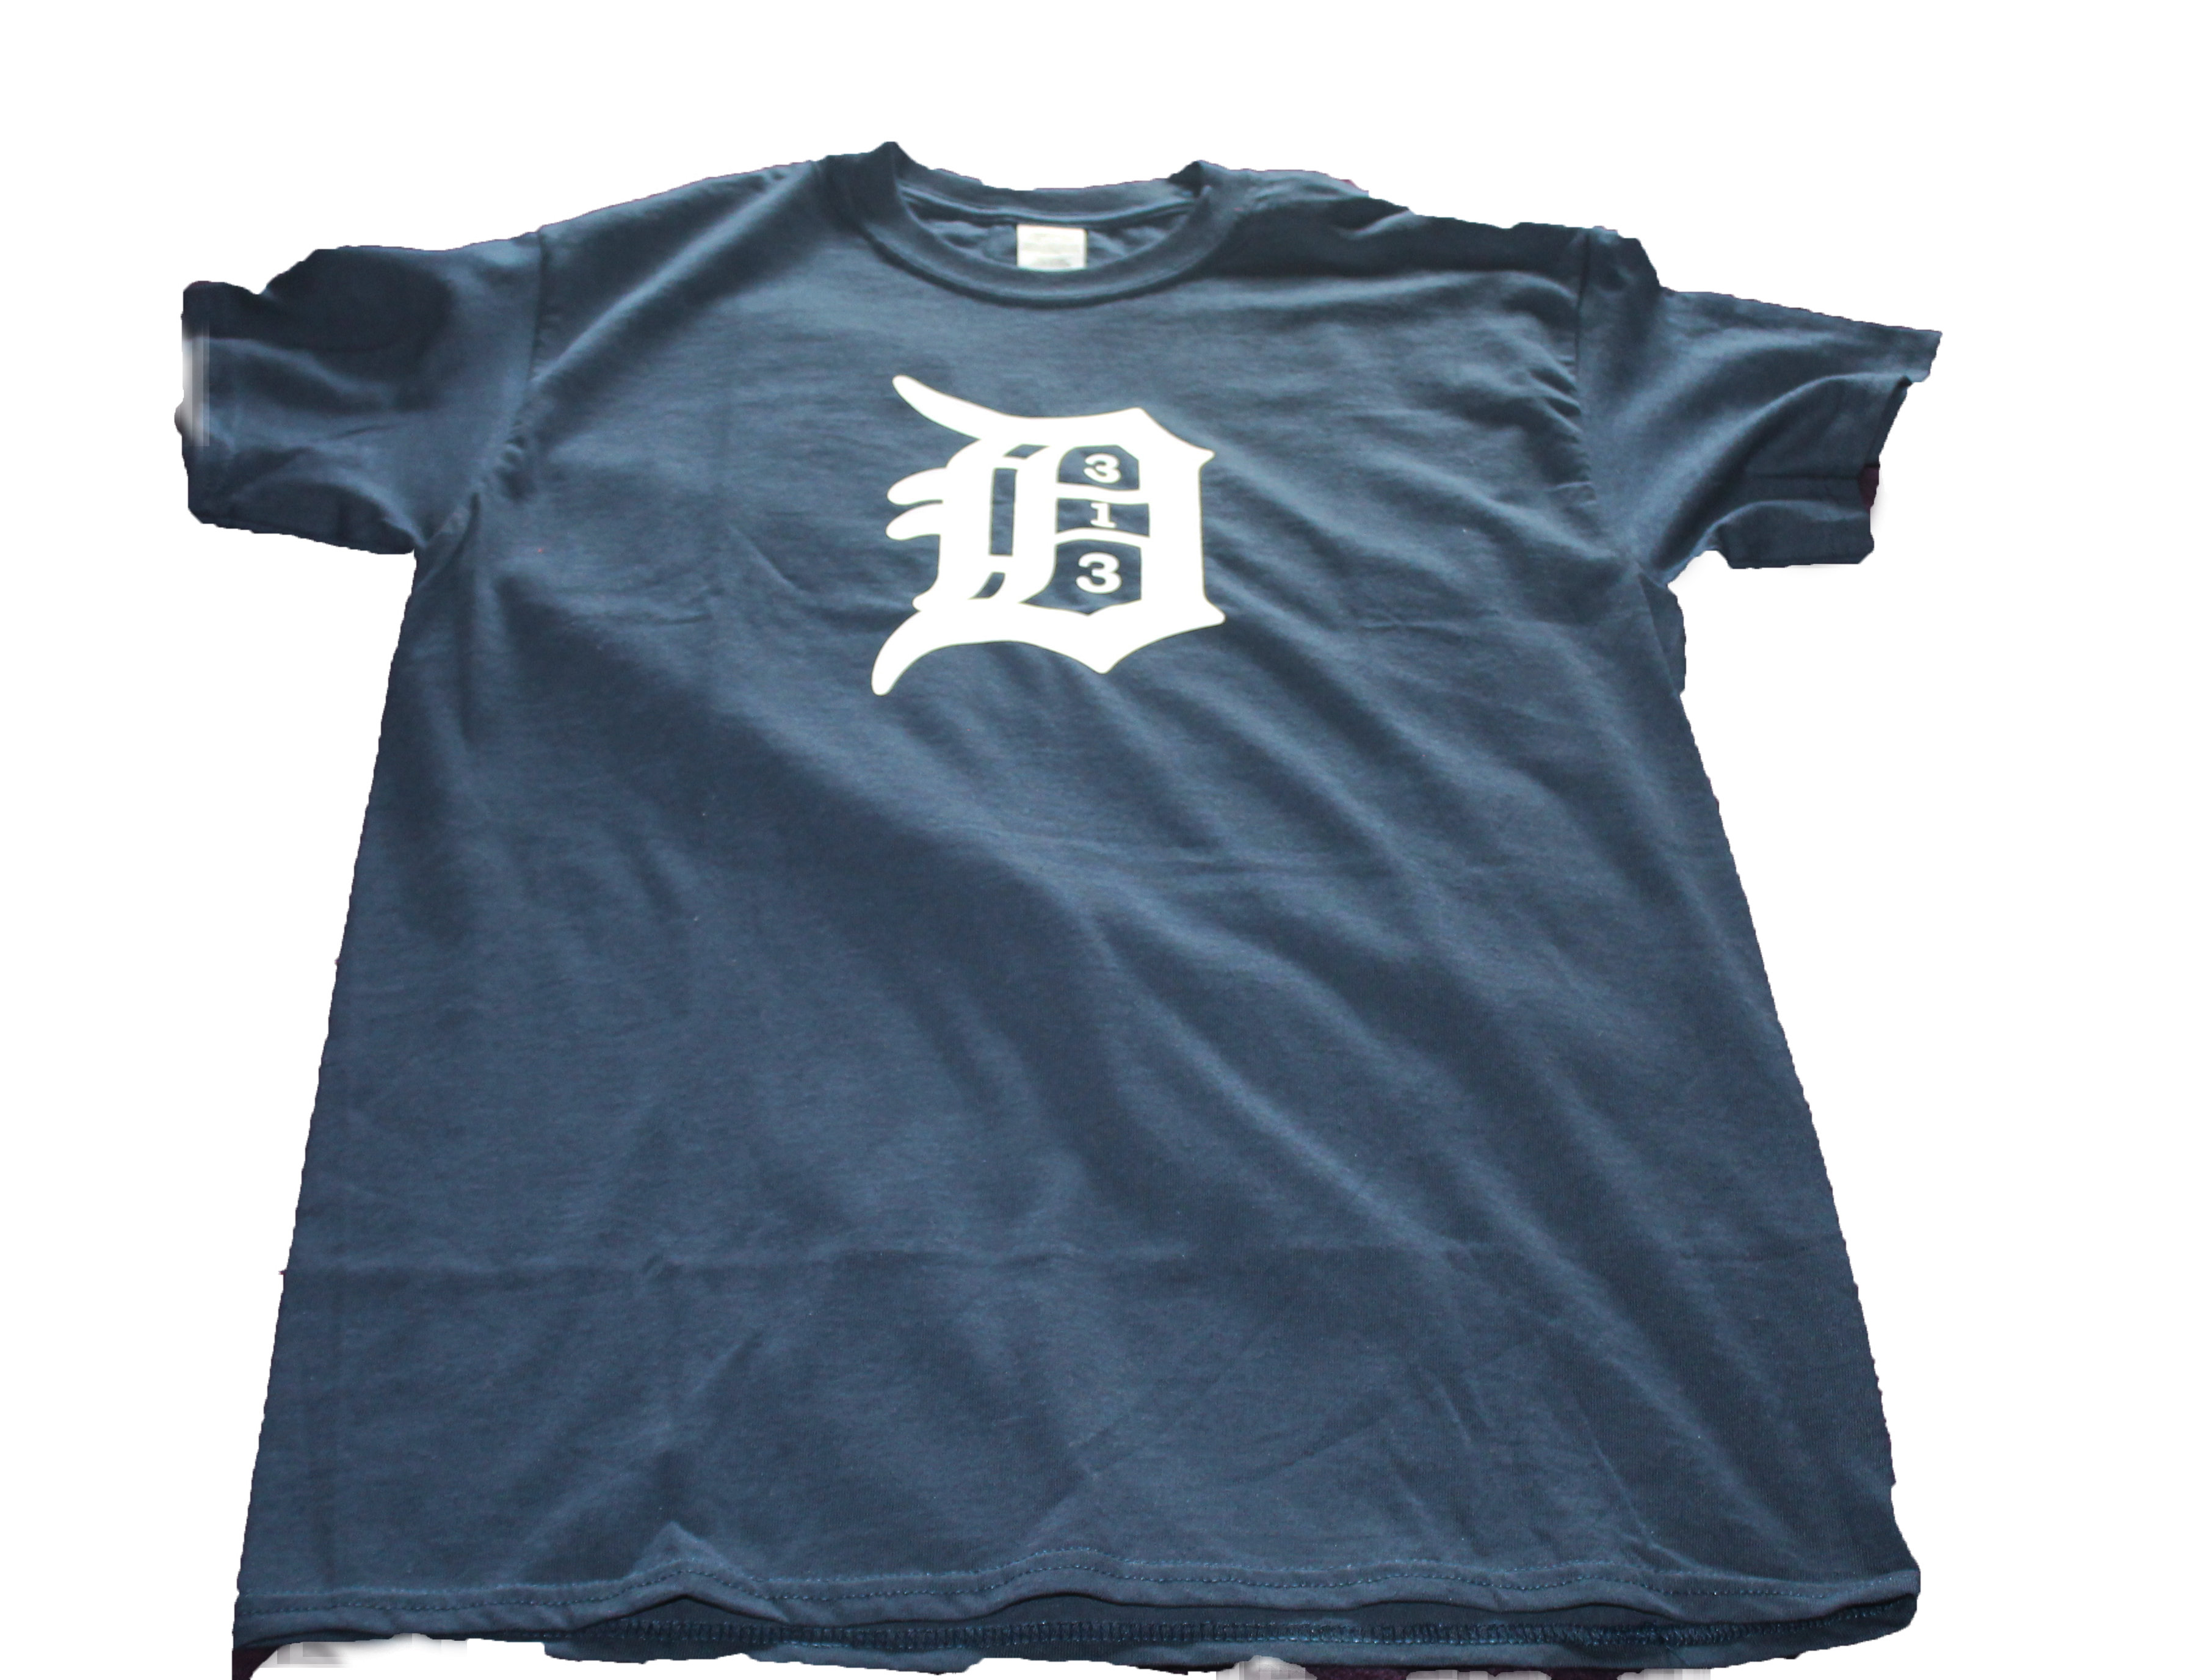 Old English D 313 (NAVY) 00186